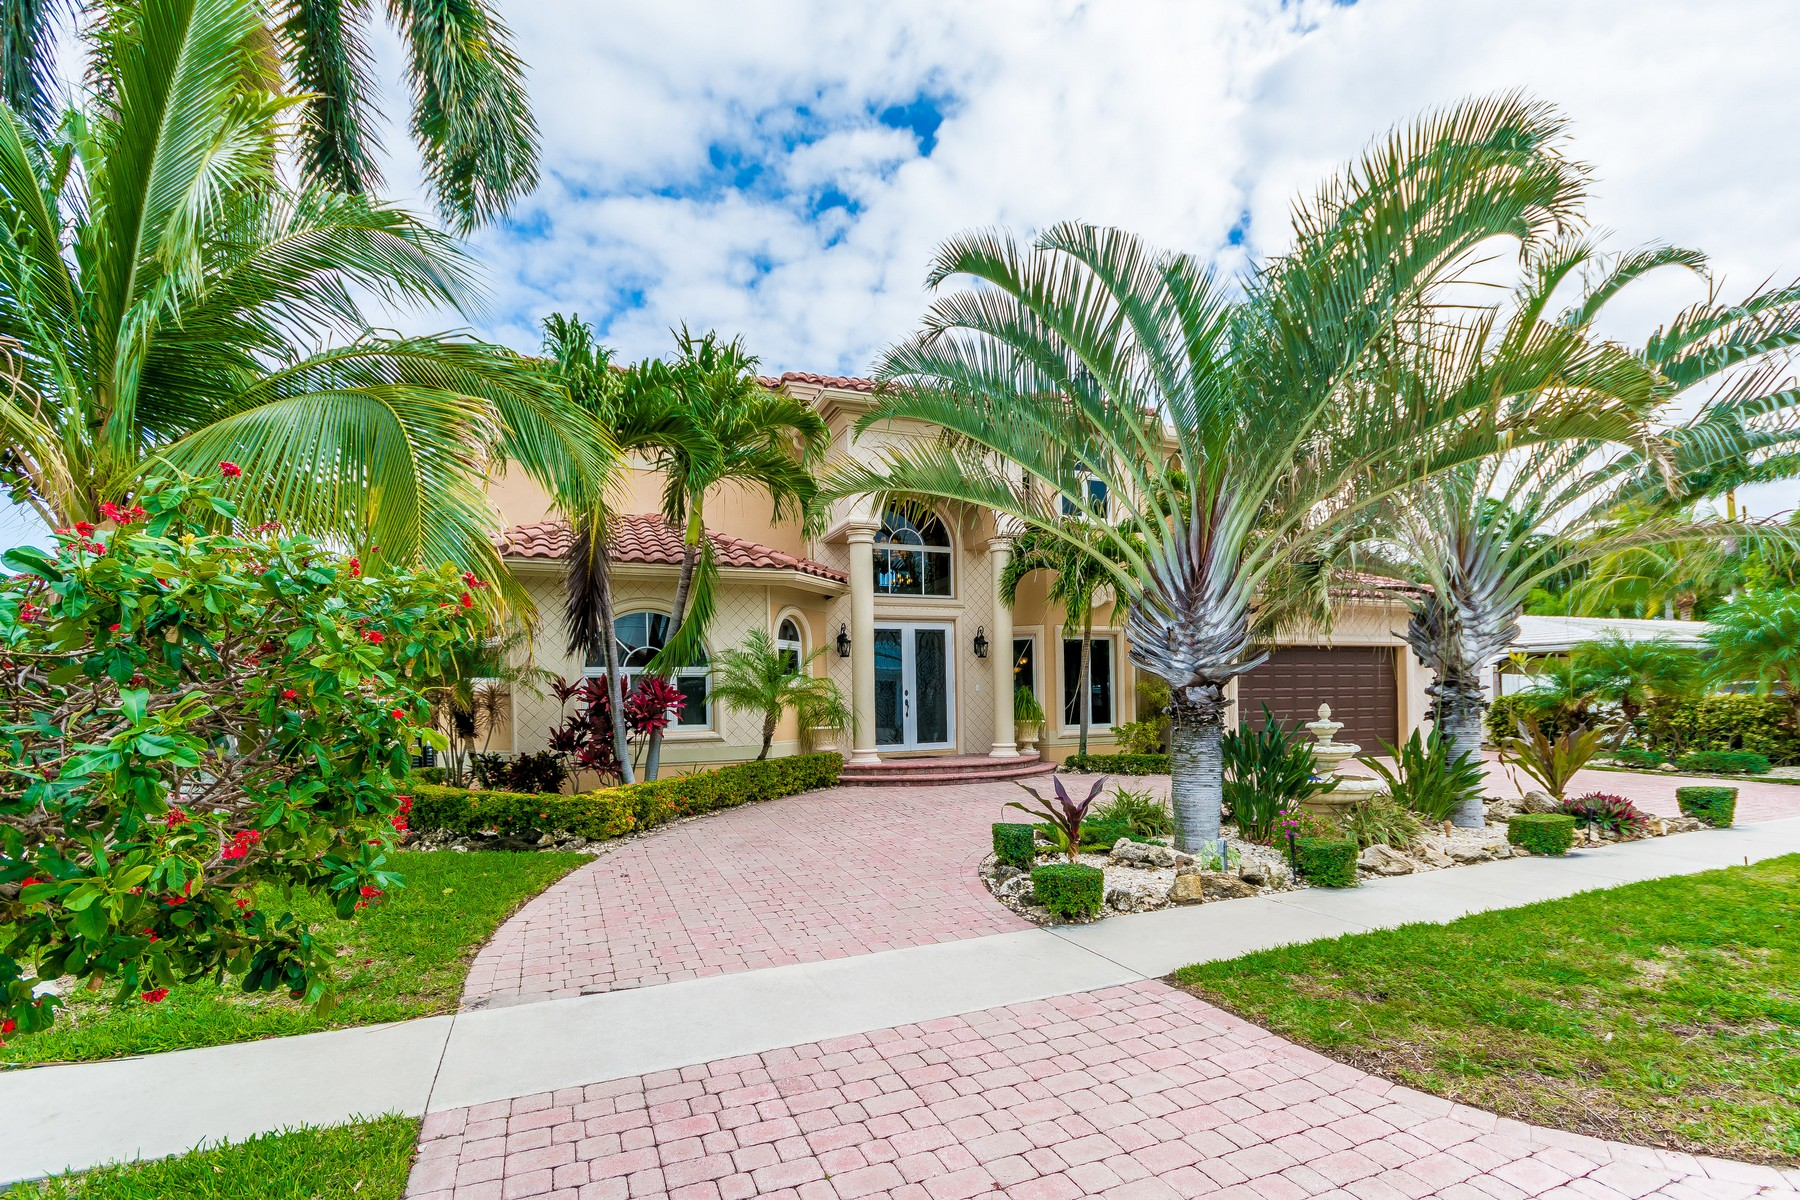 Villa per Vendita alle ore 4850 NE 29 Ave , Lighthouse Point, FL 33064 Lighthouse Point, Florida, 33064 Stati Uniti